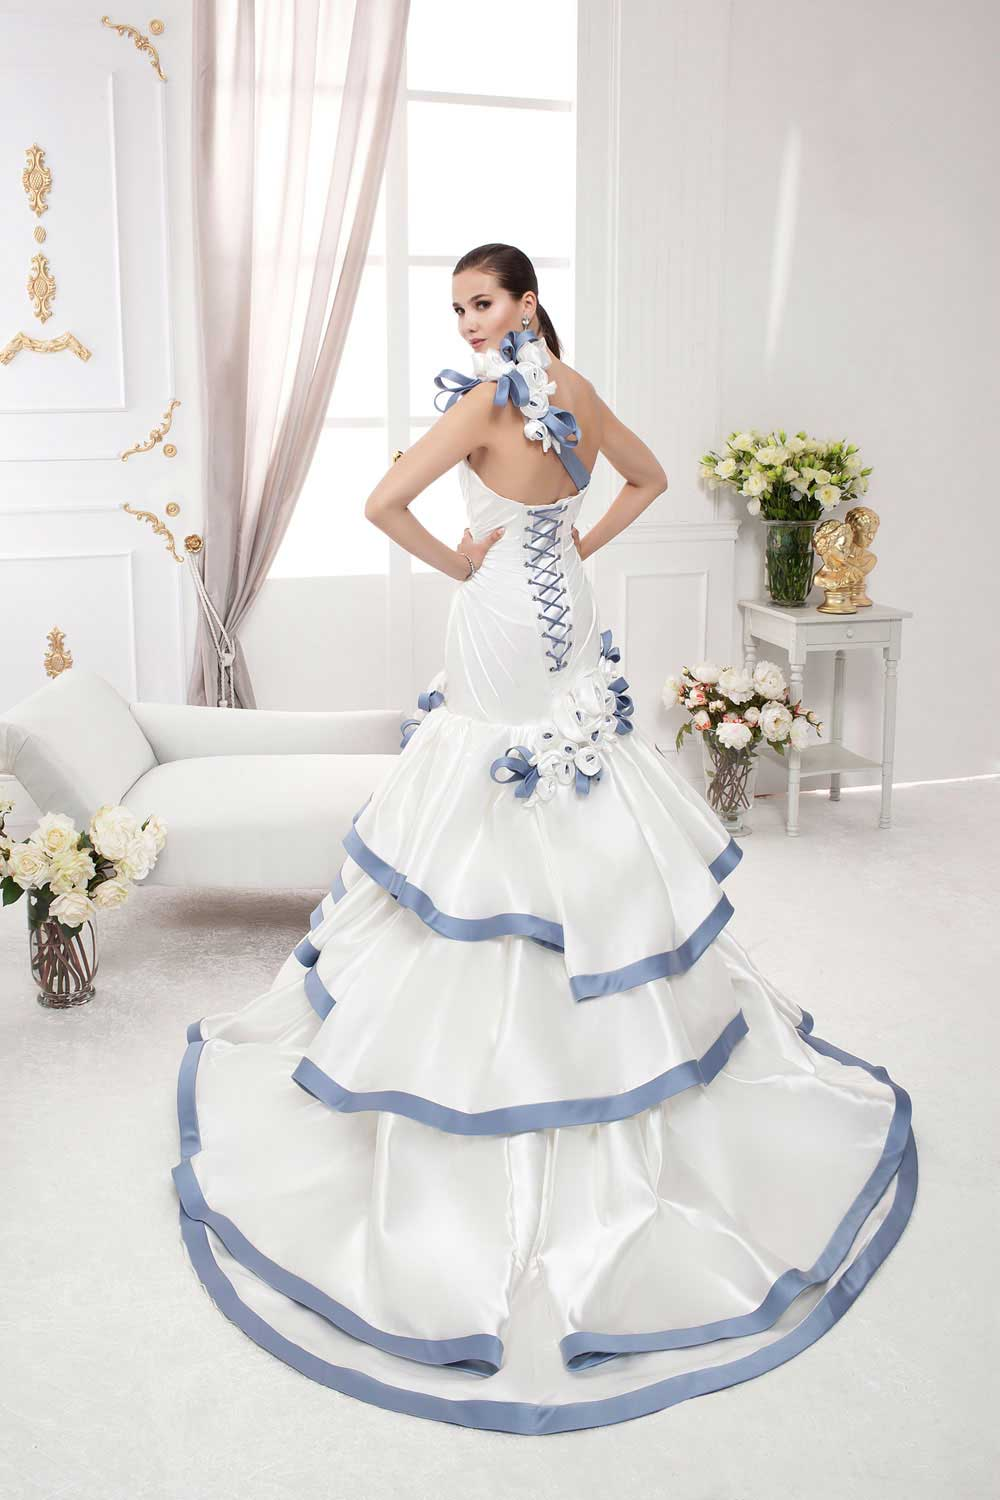 wedding dresses in Lebanon, weddings in Lebanon, wedding gowns in Lebanon, Lebanon wedding dresses, Lebanese brides